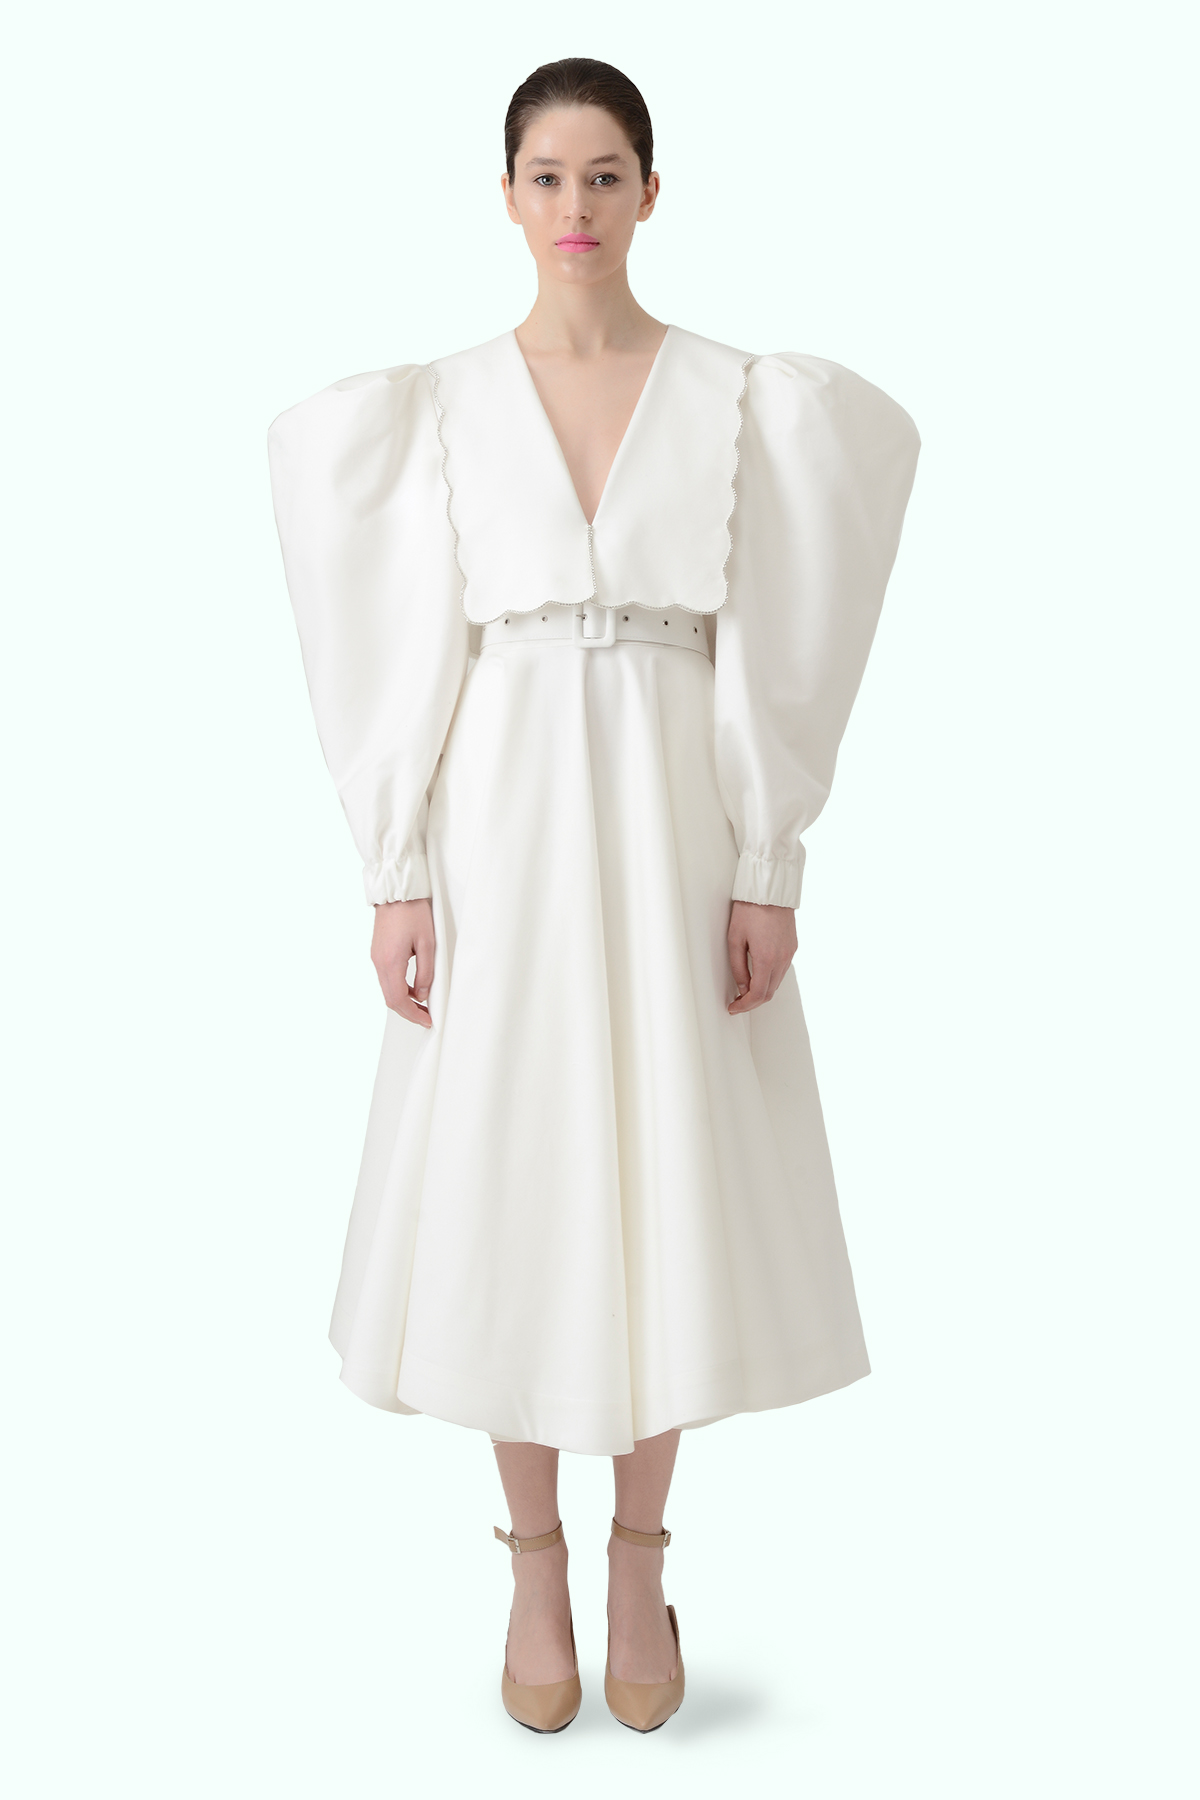 Puff sleeve dress with puritan collar and embroidered crystals